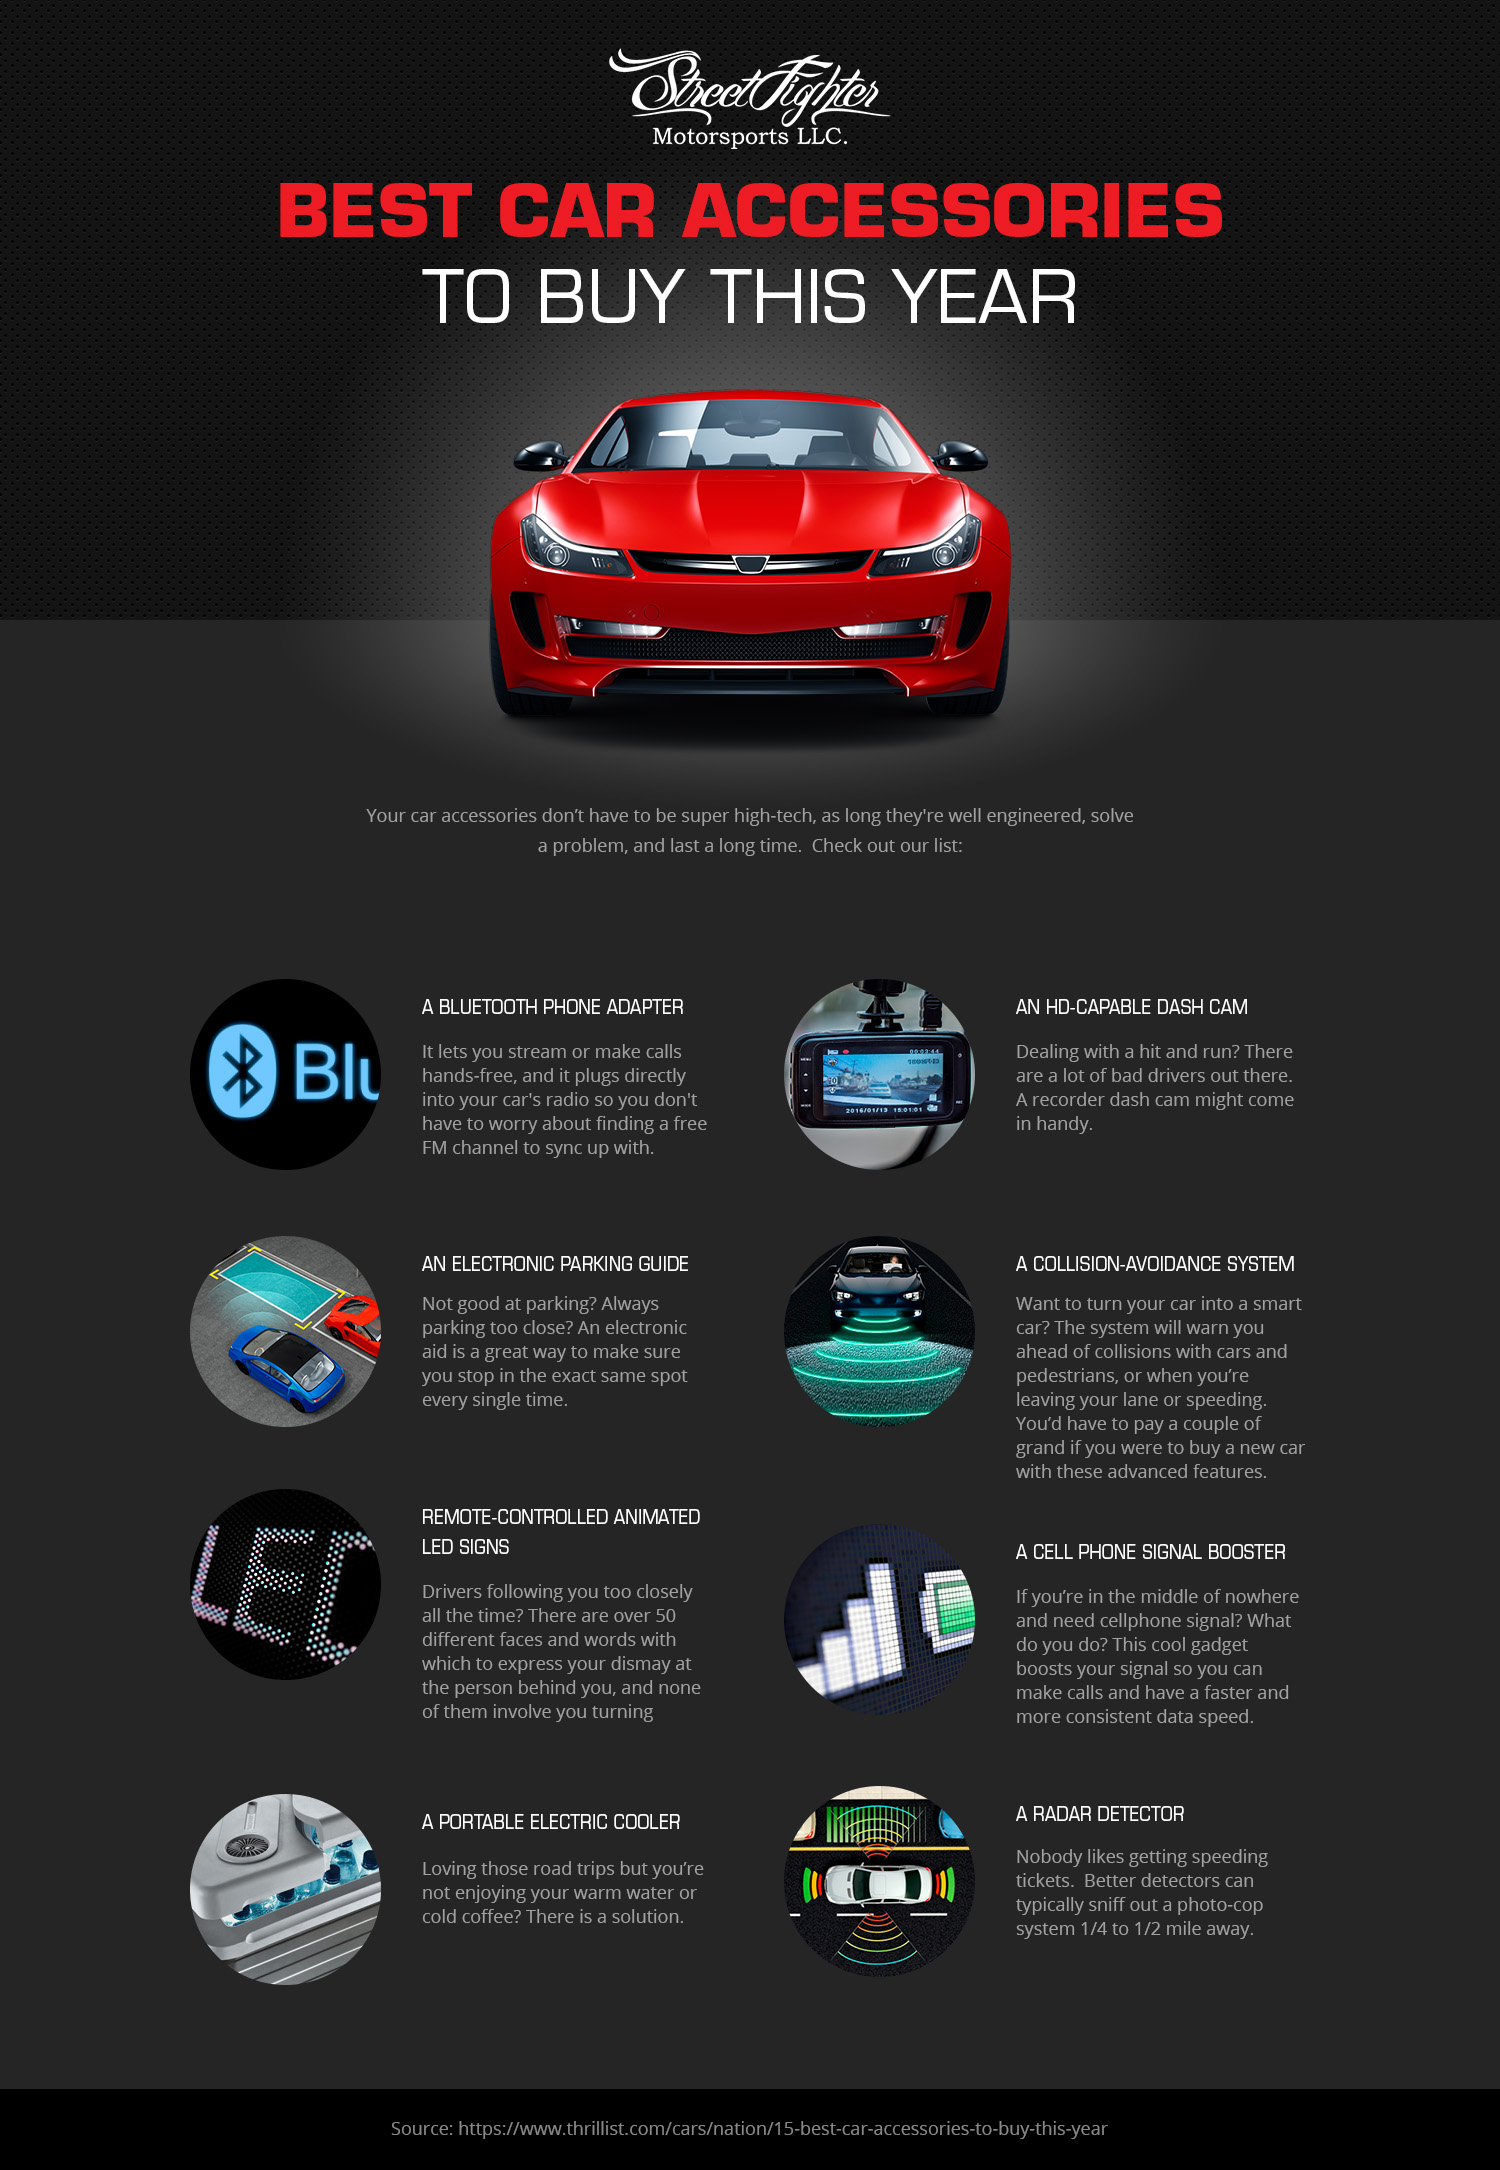 Why You Should Accessorize Your Car - Infographic